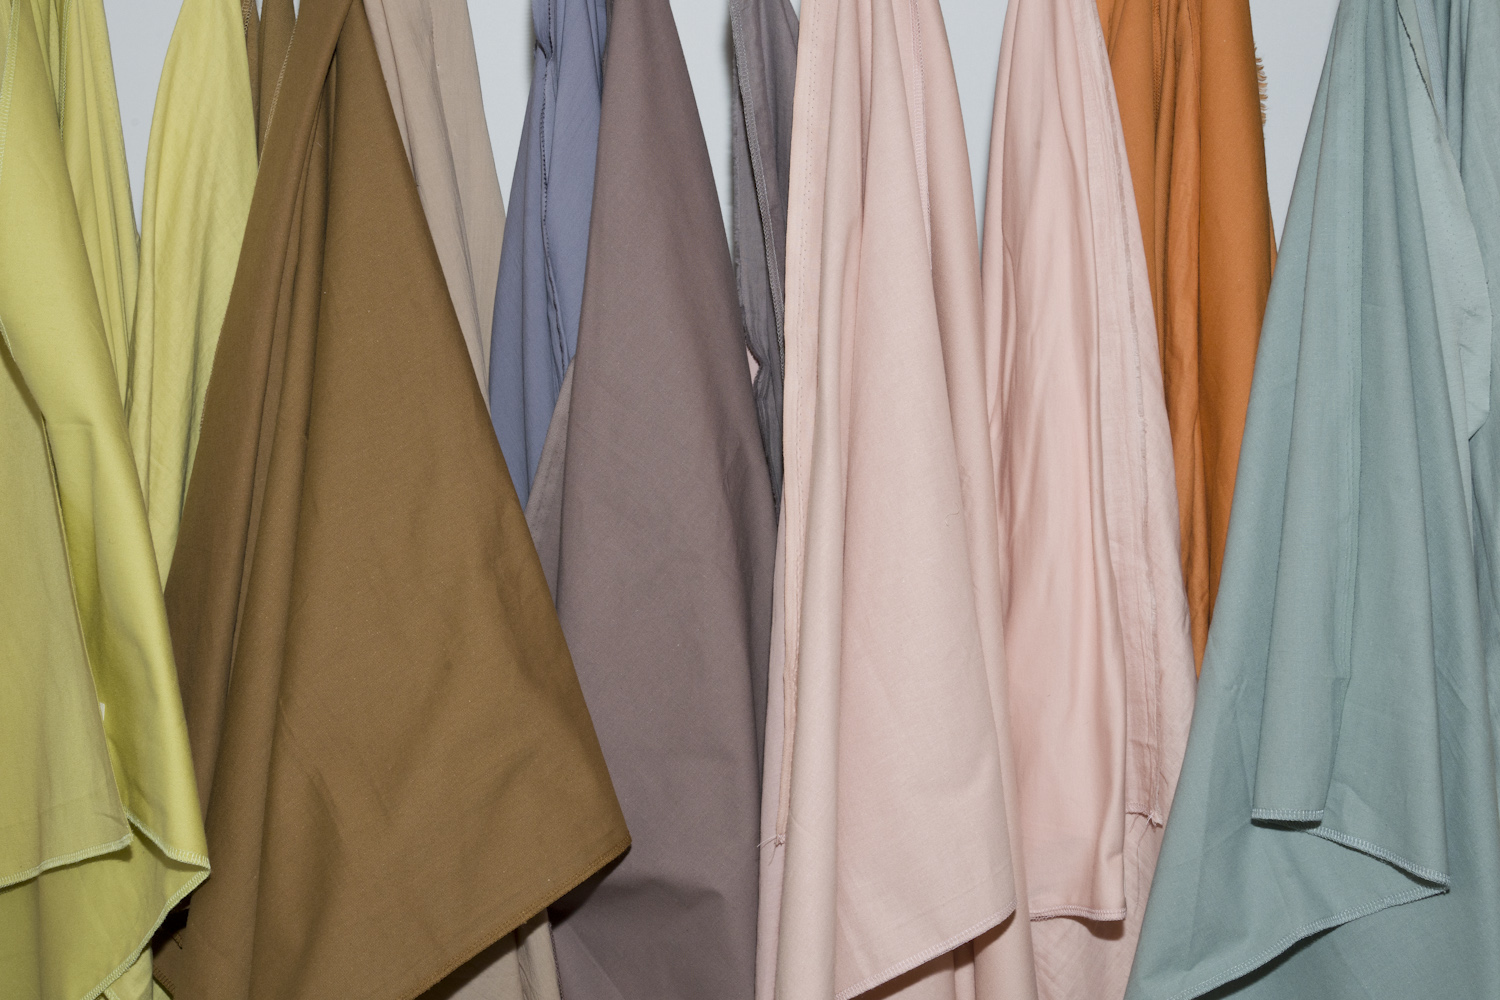 Fabrics from Toyoshima's Food Textile Labo textile project, using dyes produced from waste.